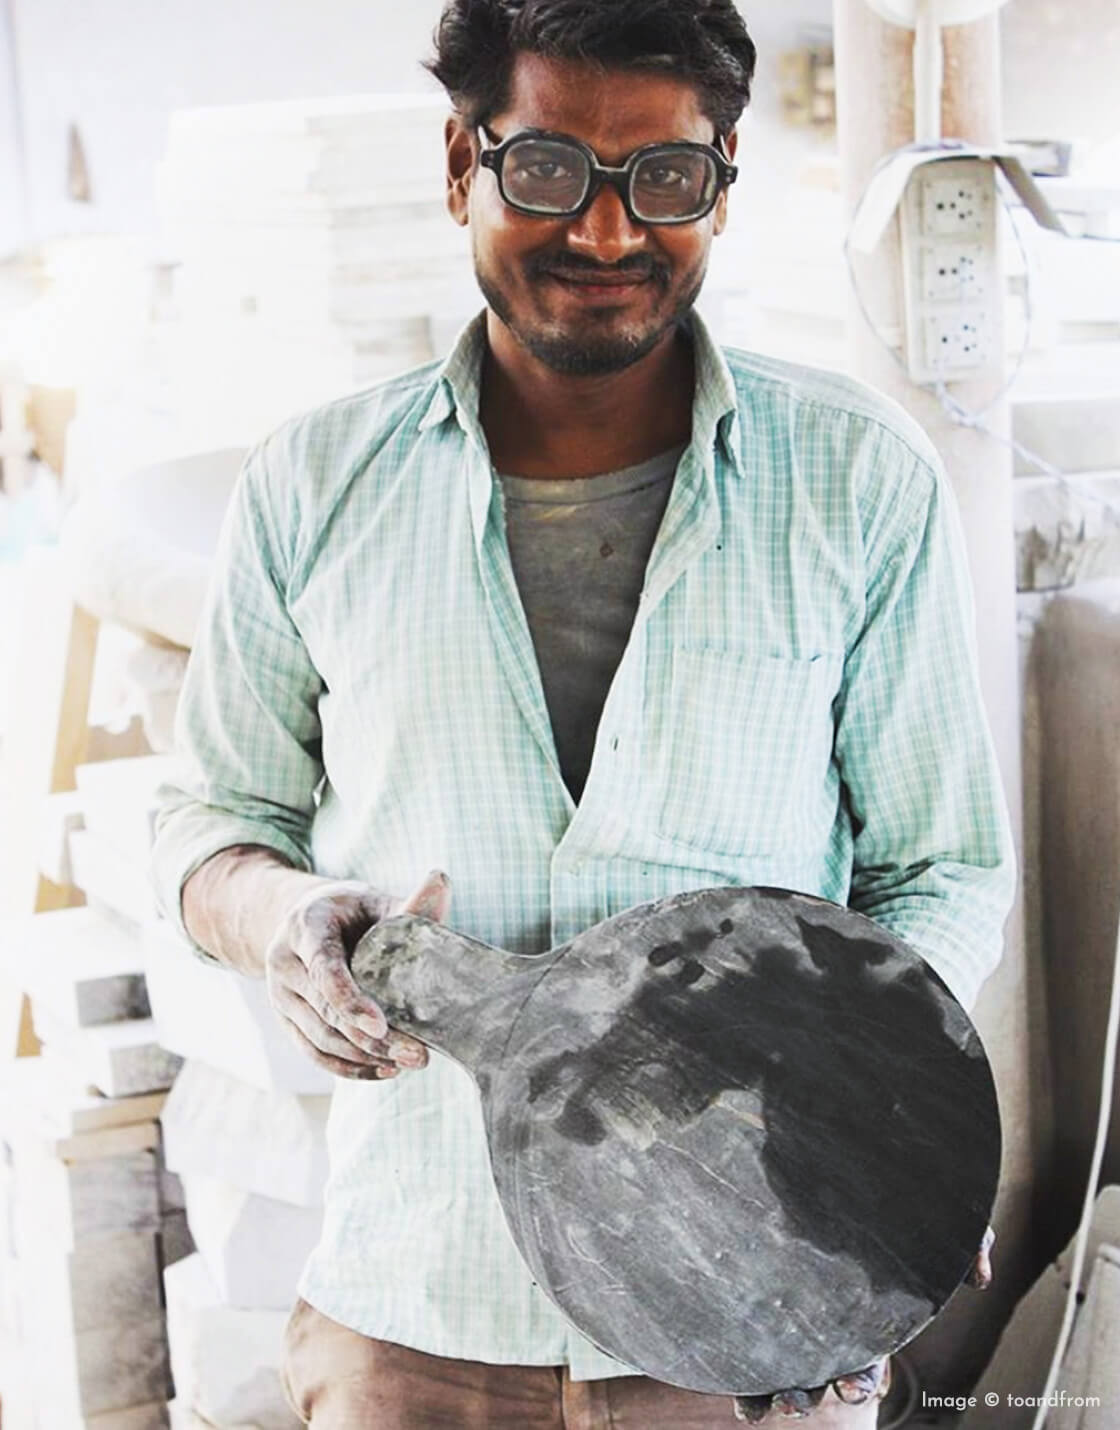 indian goods co blog origins of products handmade in india ethically produced sustainable considered living toandfrom nadmade chakla